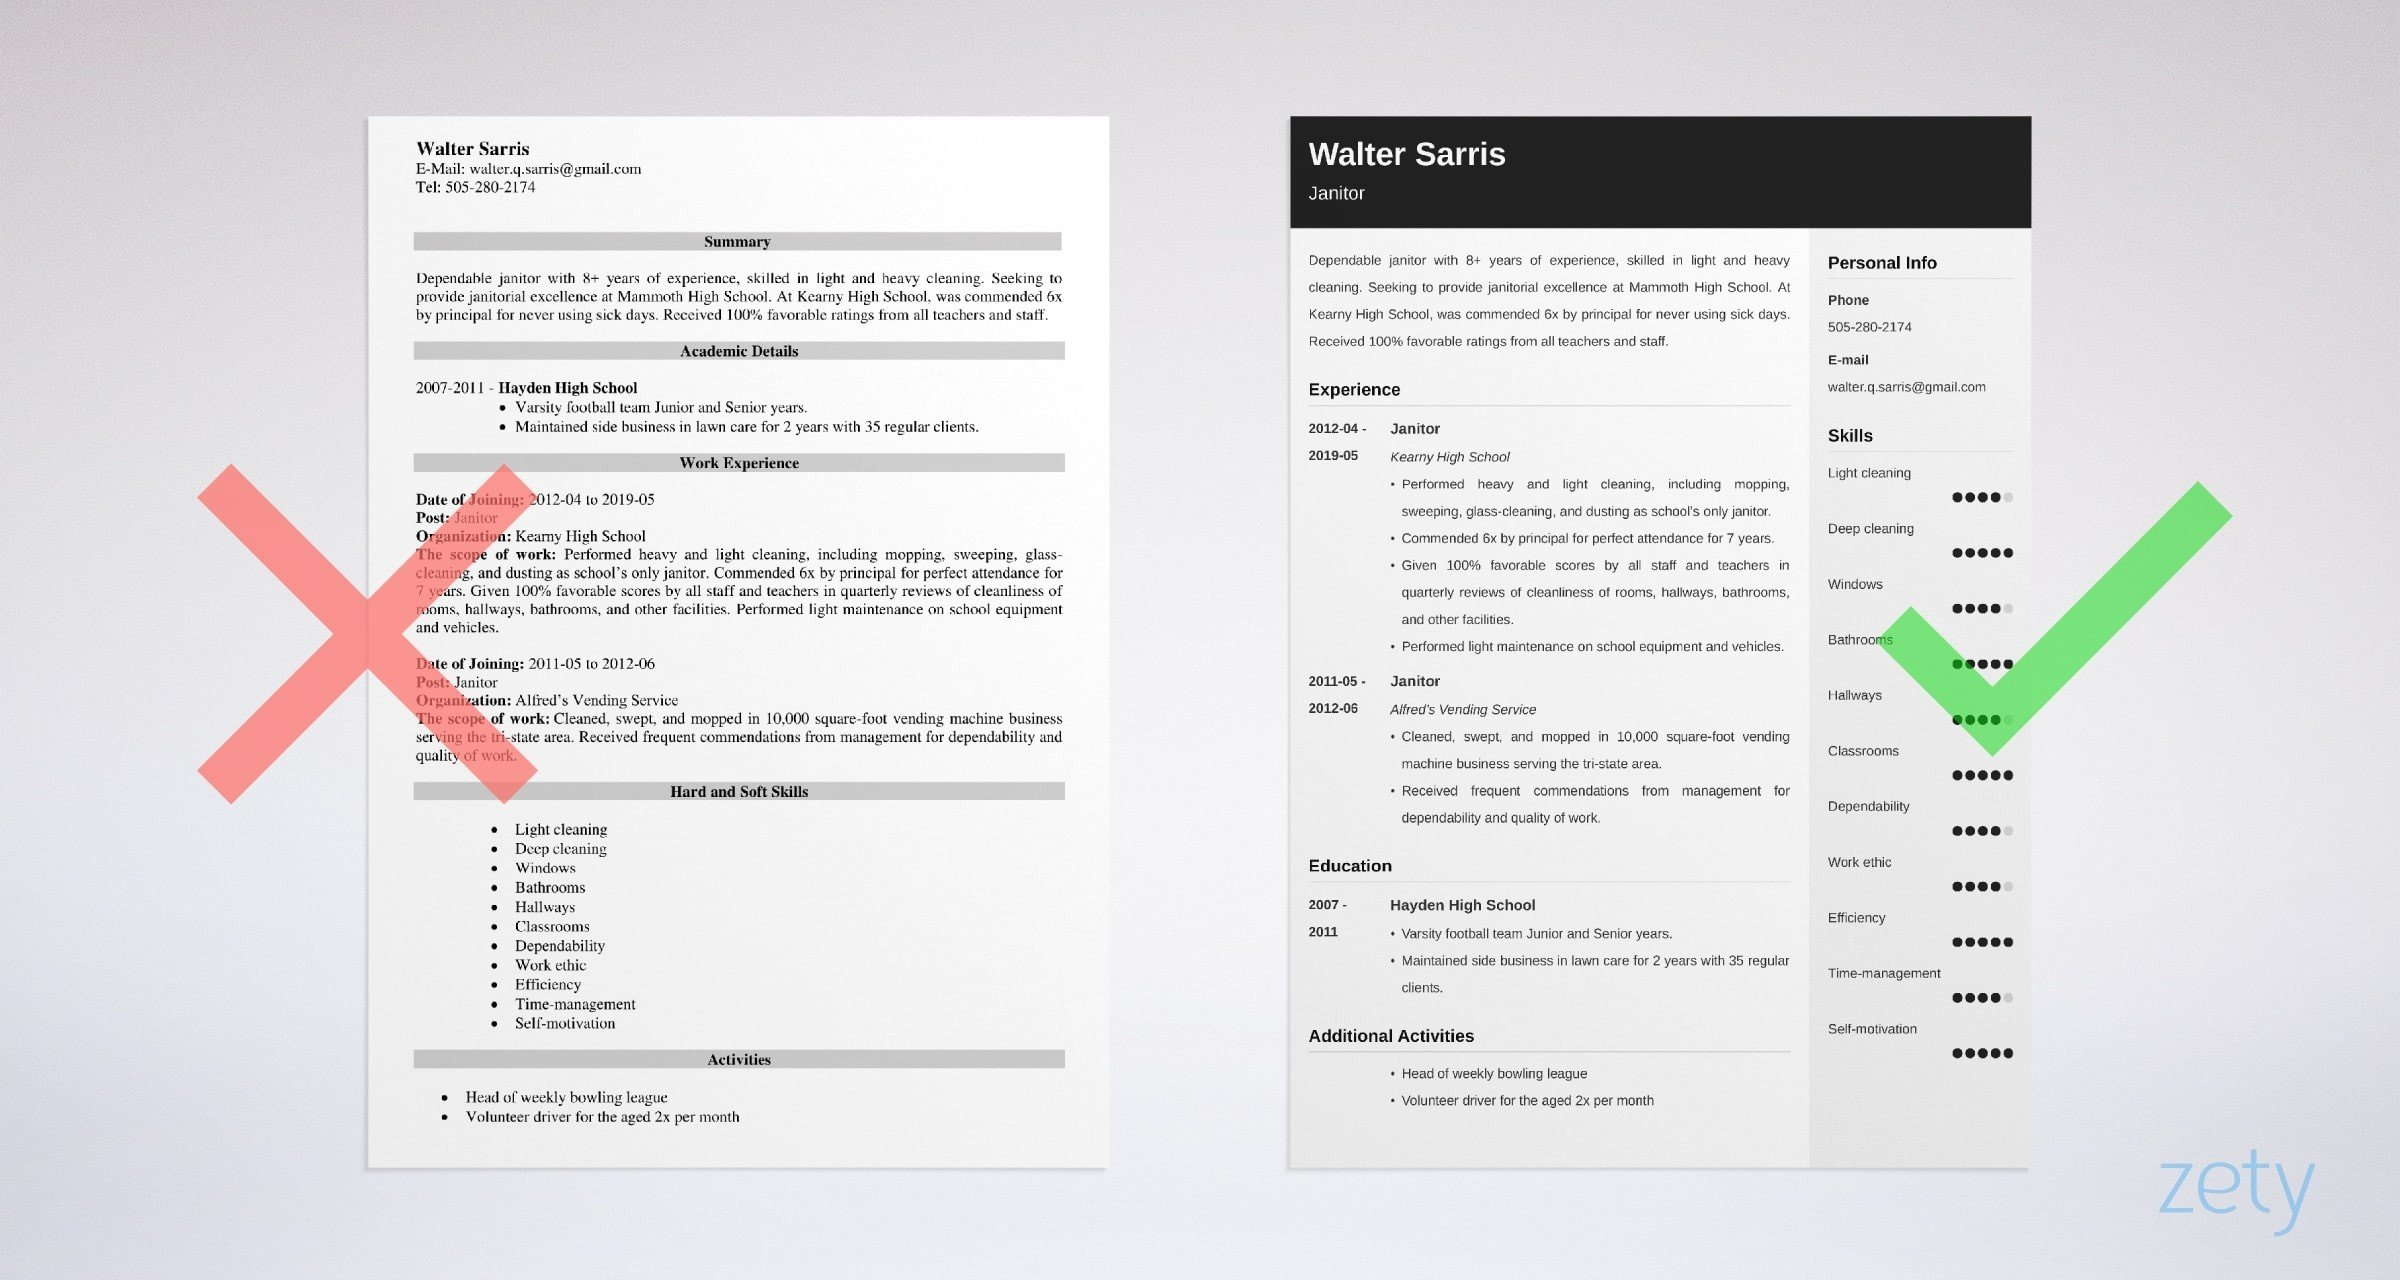 Janitor Resume Sample And Complete Writing Guide 20 Tips